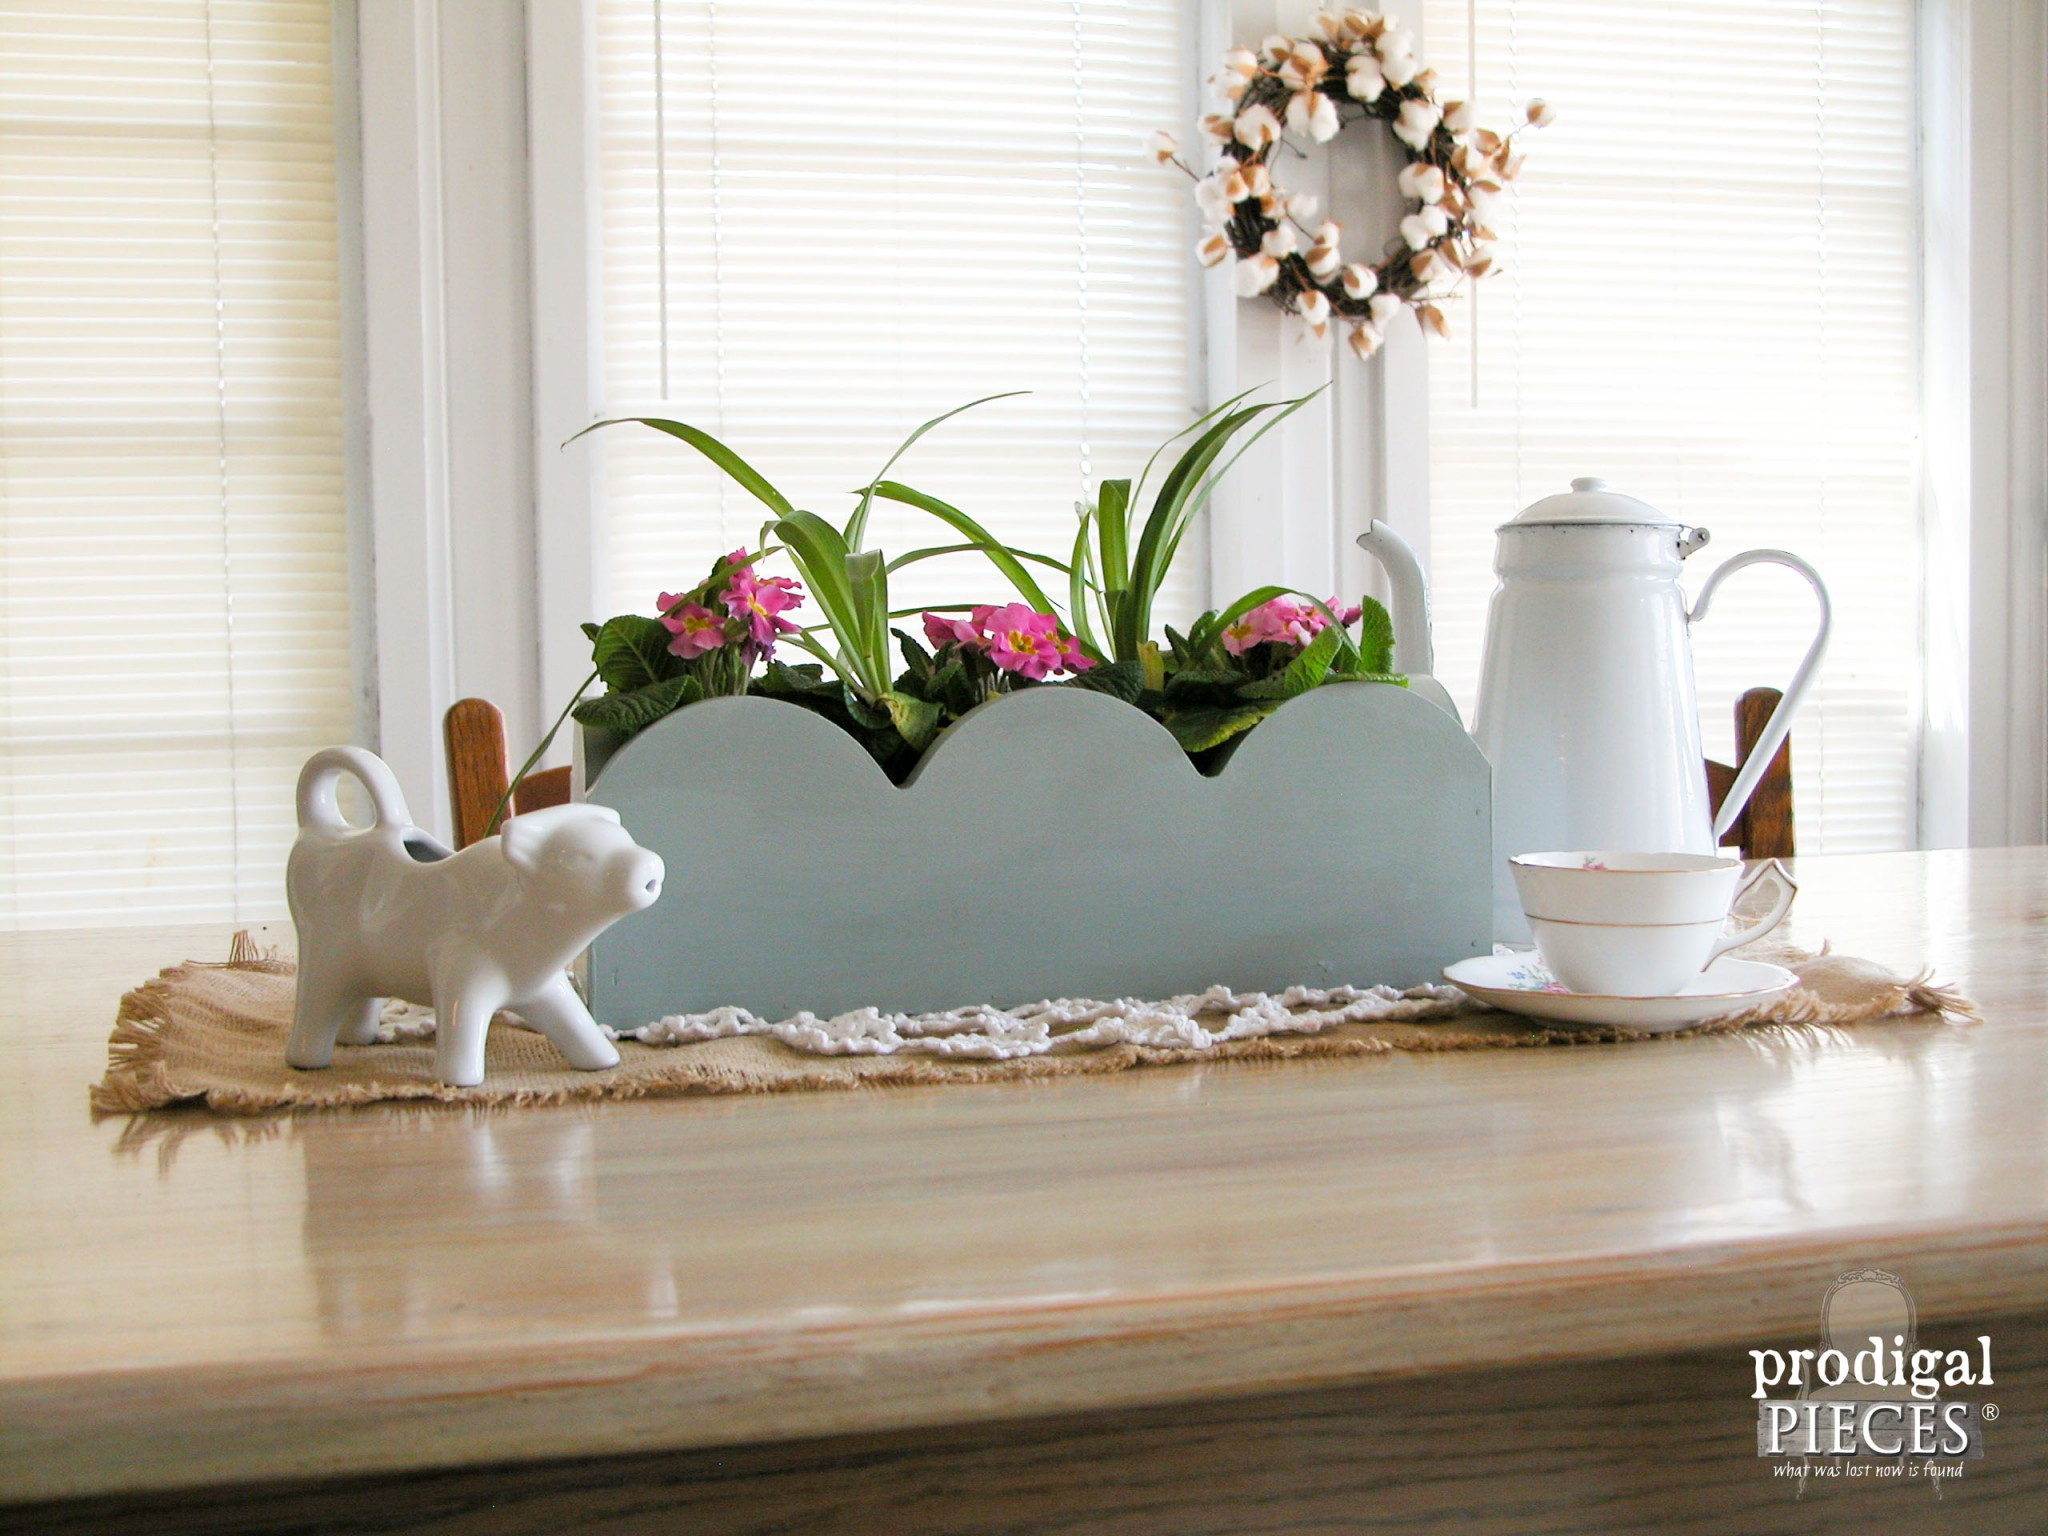 Table Centerpiece Made from Repurposed Kitchen Valance by Prodigal Pieces | www.prodigalpieces.com